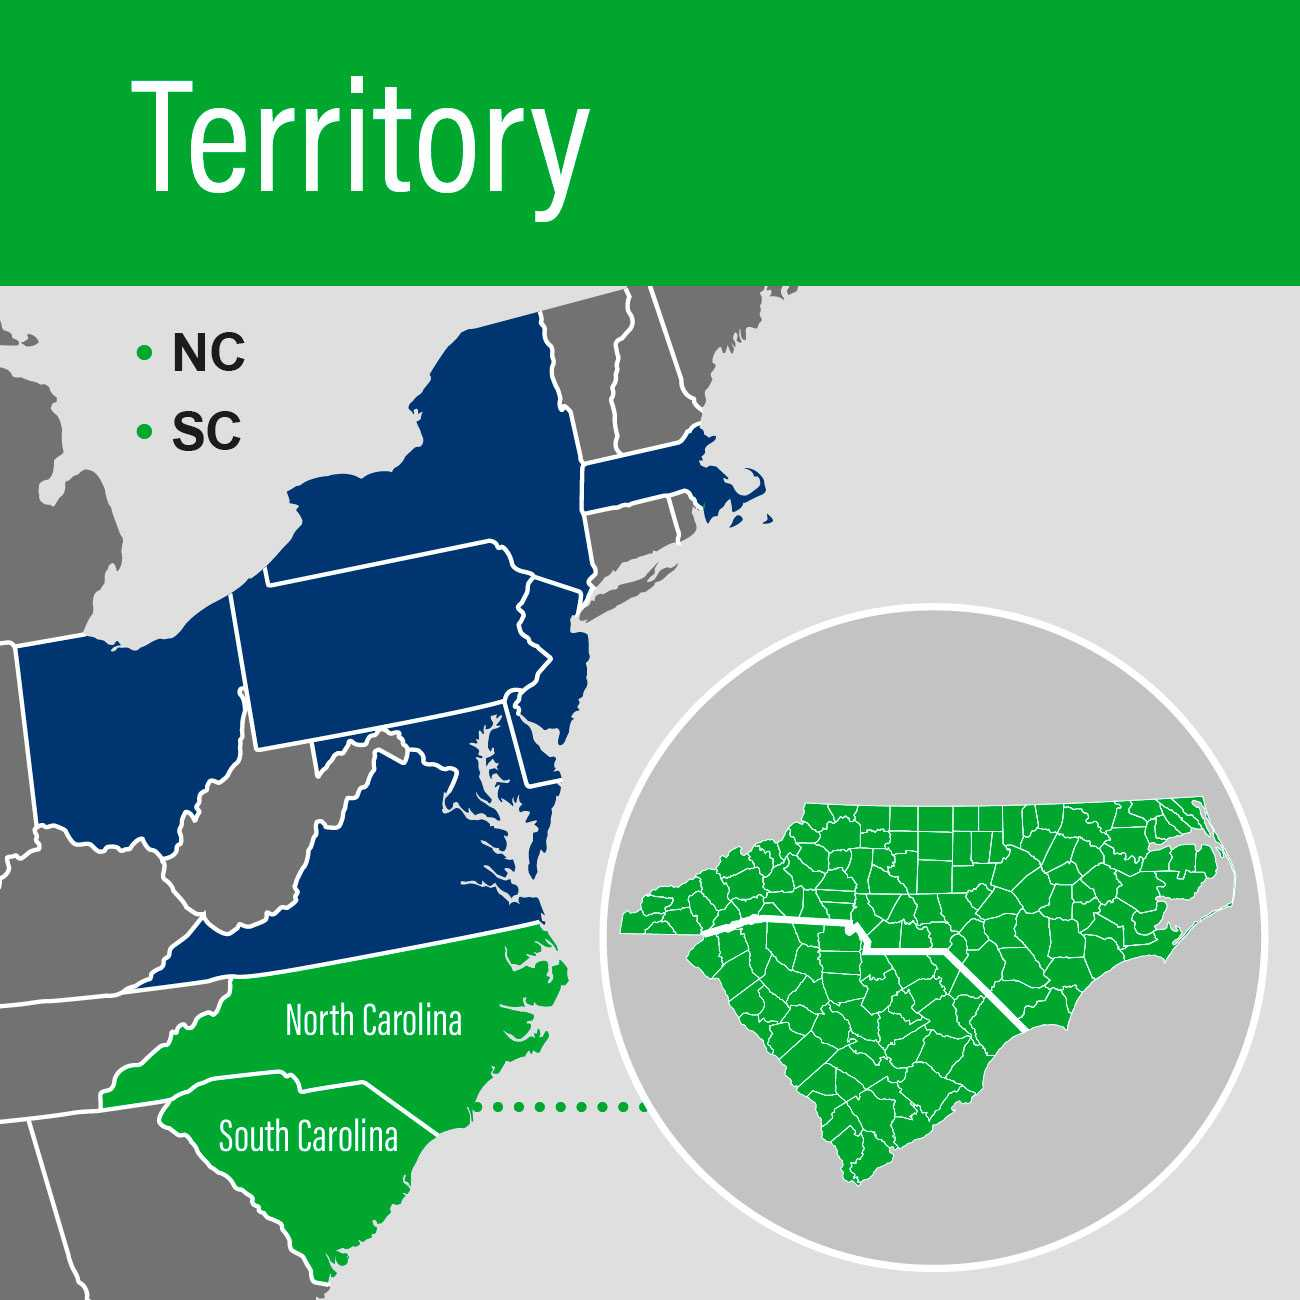 Territory Map highlighting North Carolina and South Carolina